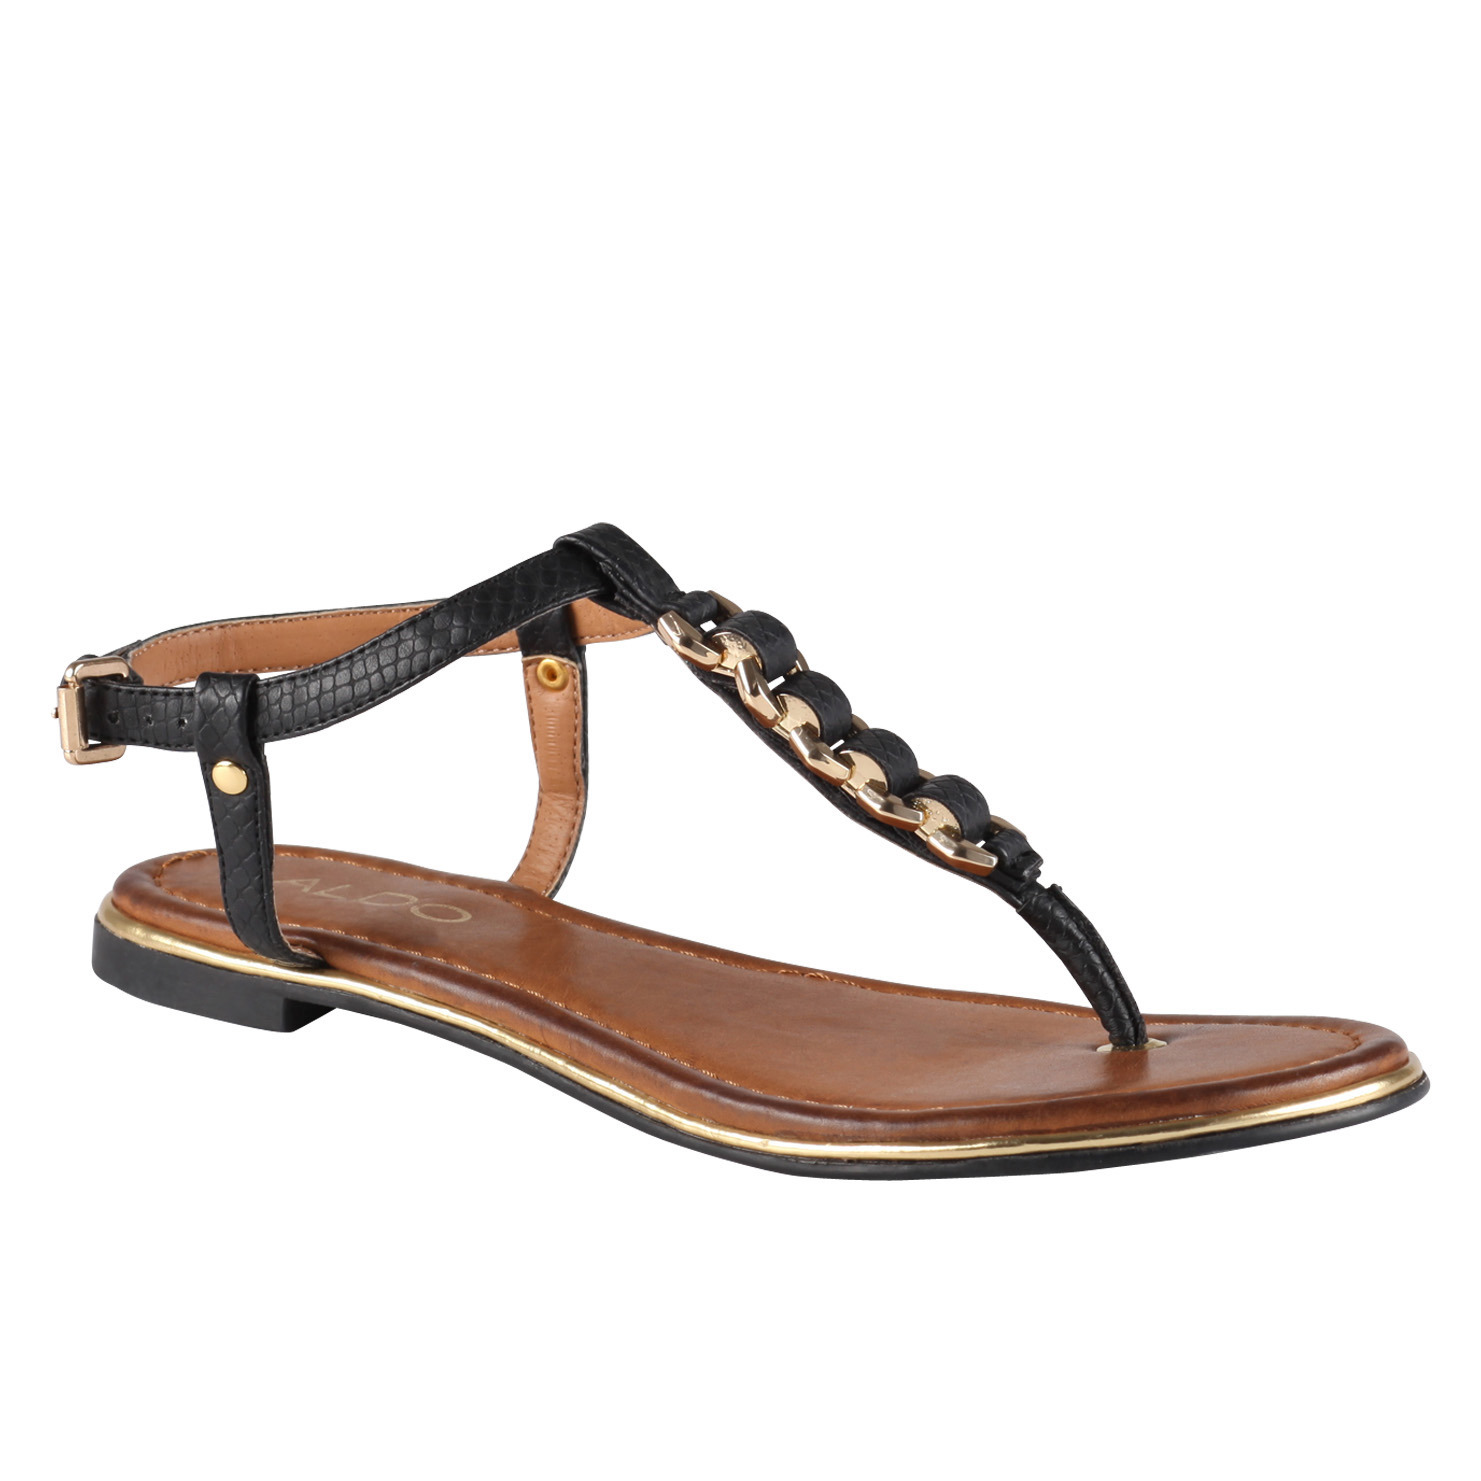 New Look latest summer sandal shoes collection 2015 (2)